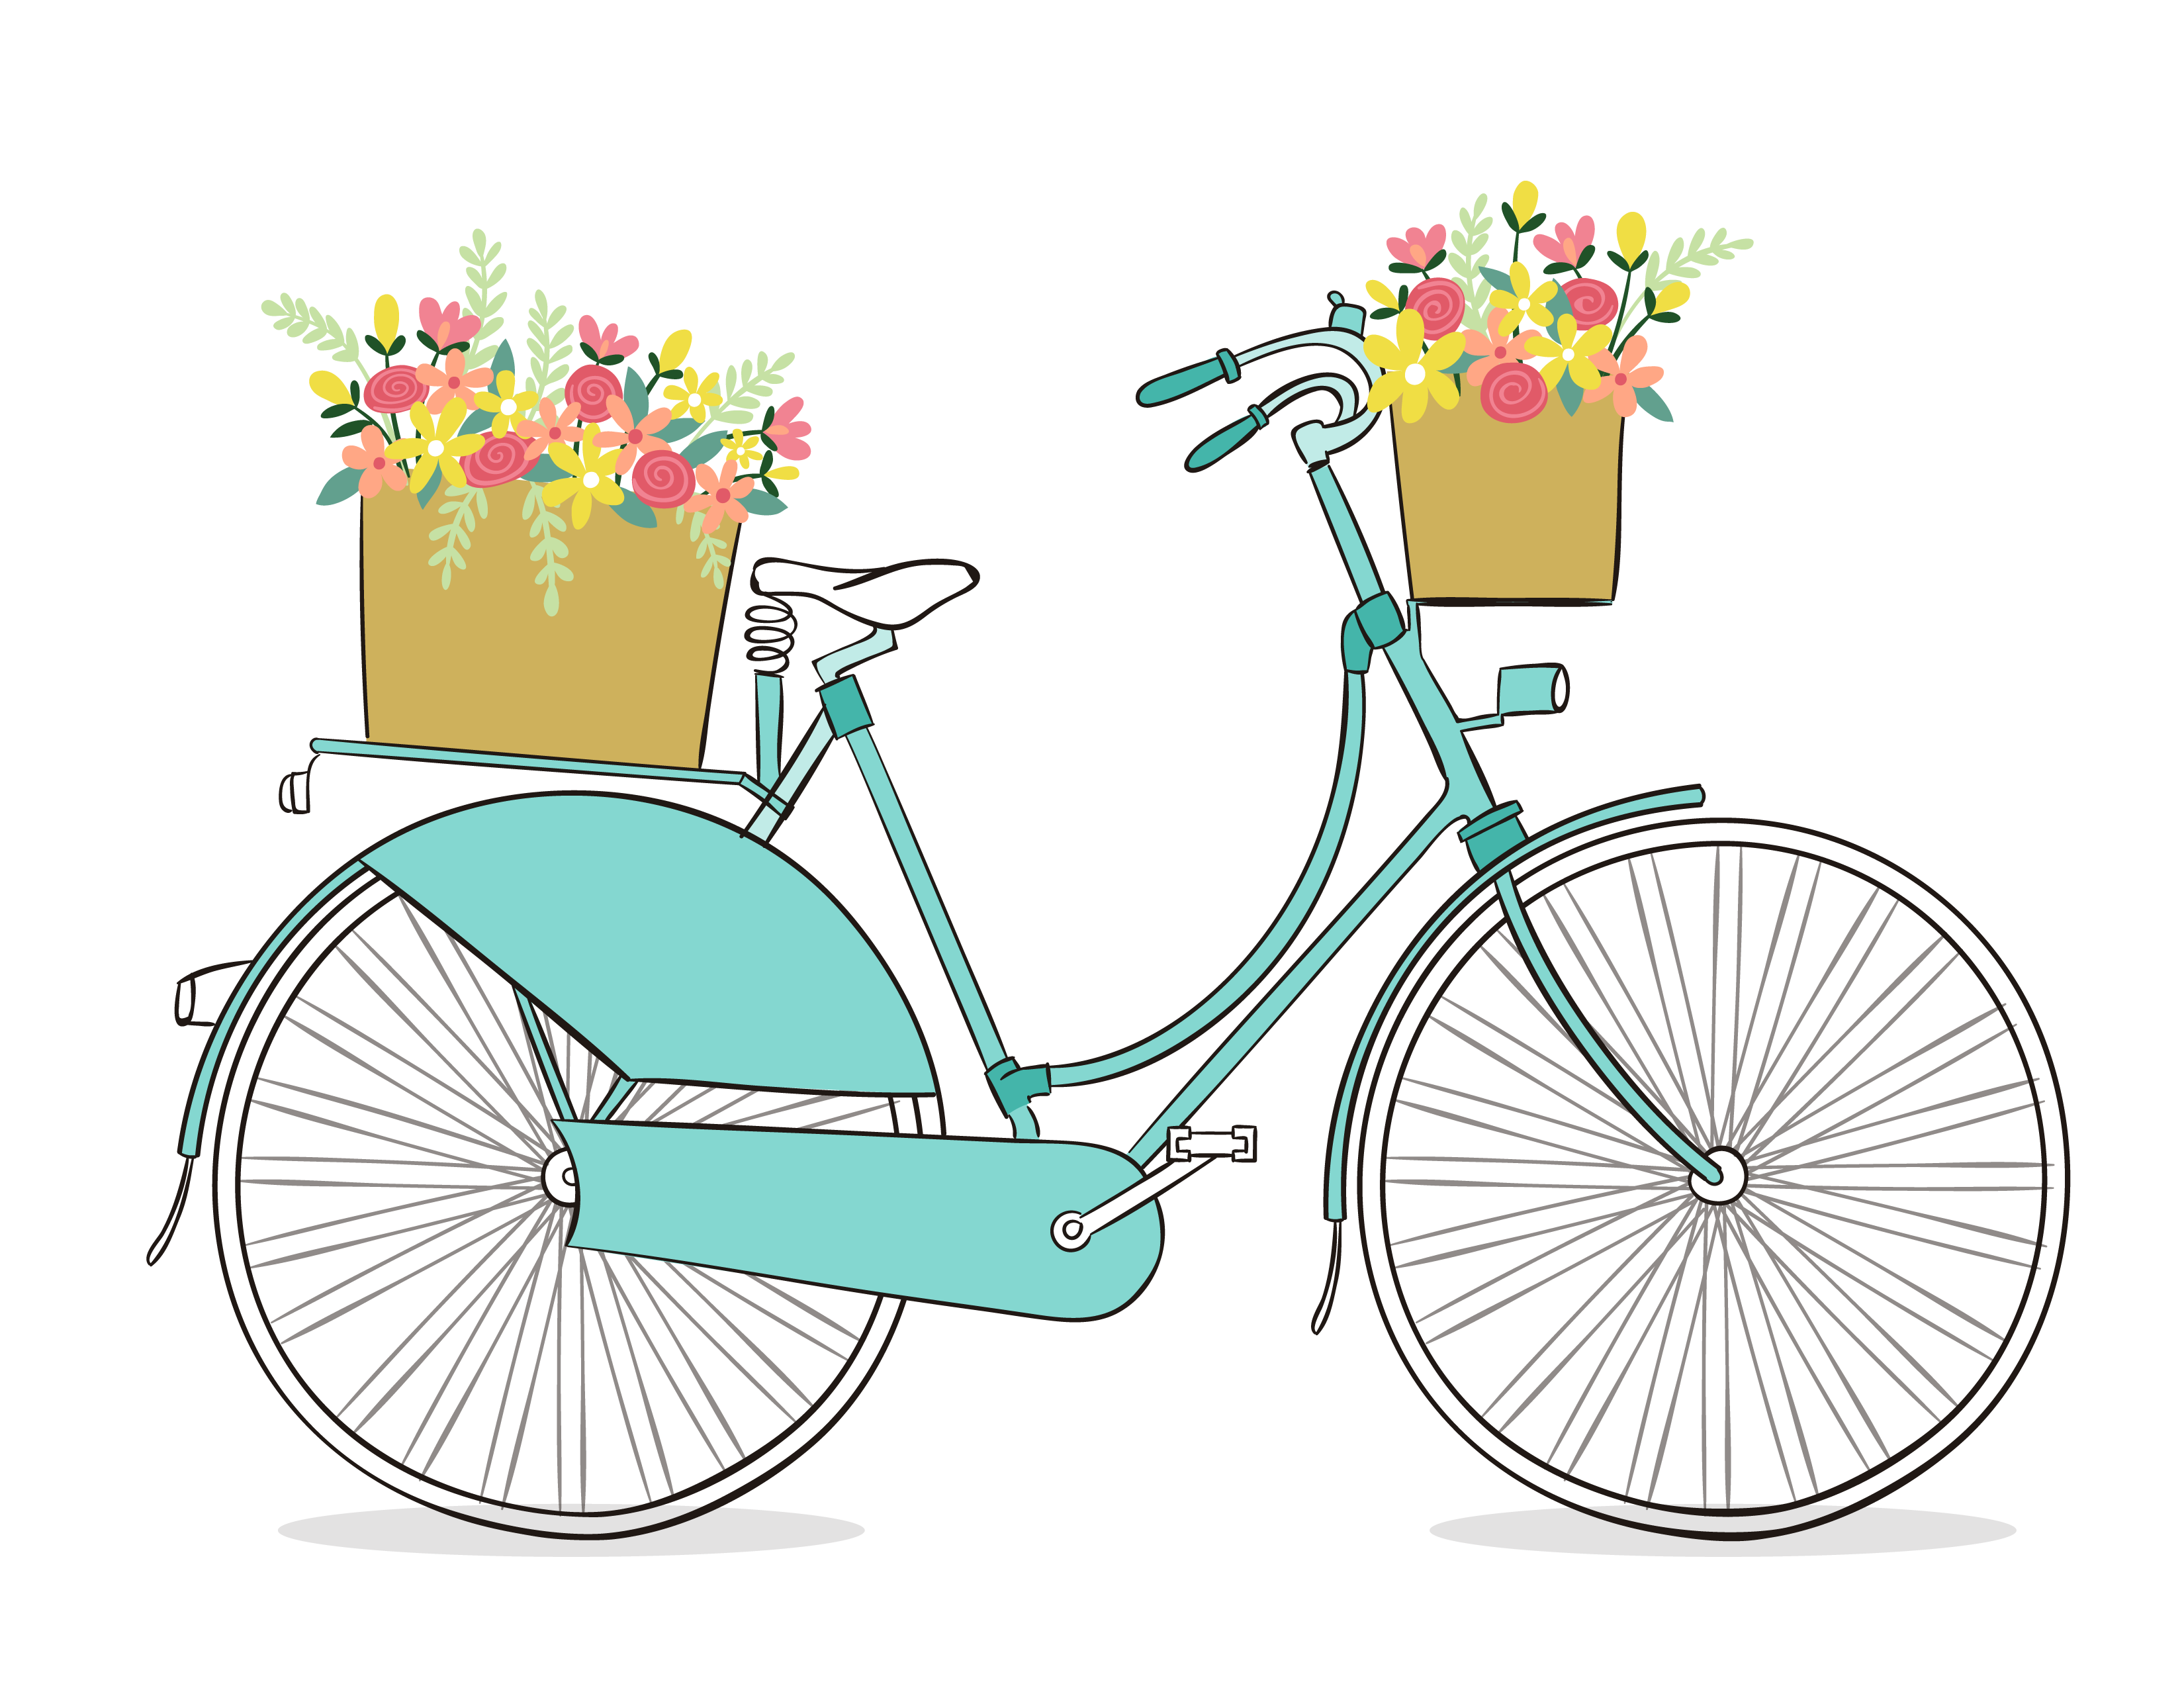 Bicycle with flower basket clipart vector freeuse Free Romantic Bicycle Clip Art - Free Pretty Things For You vector freeuse